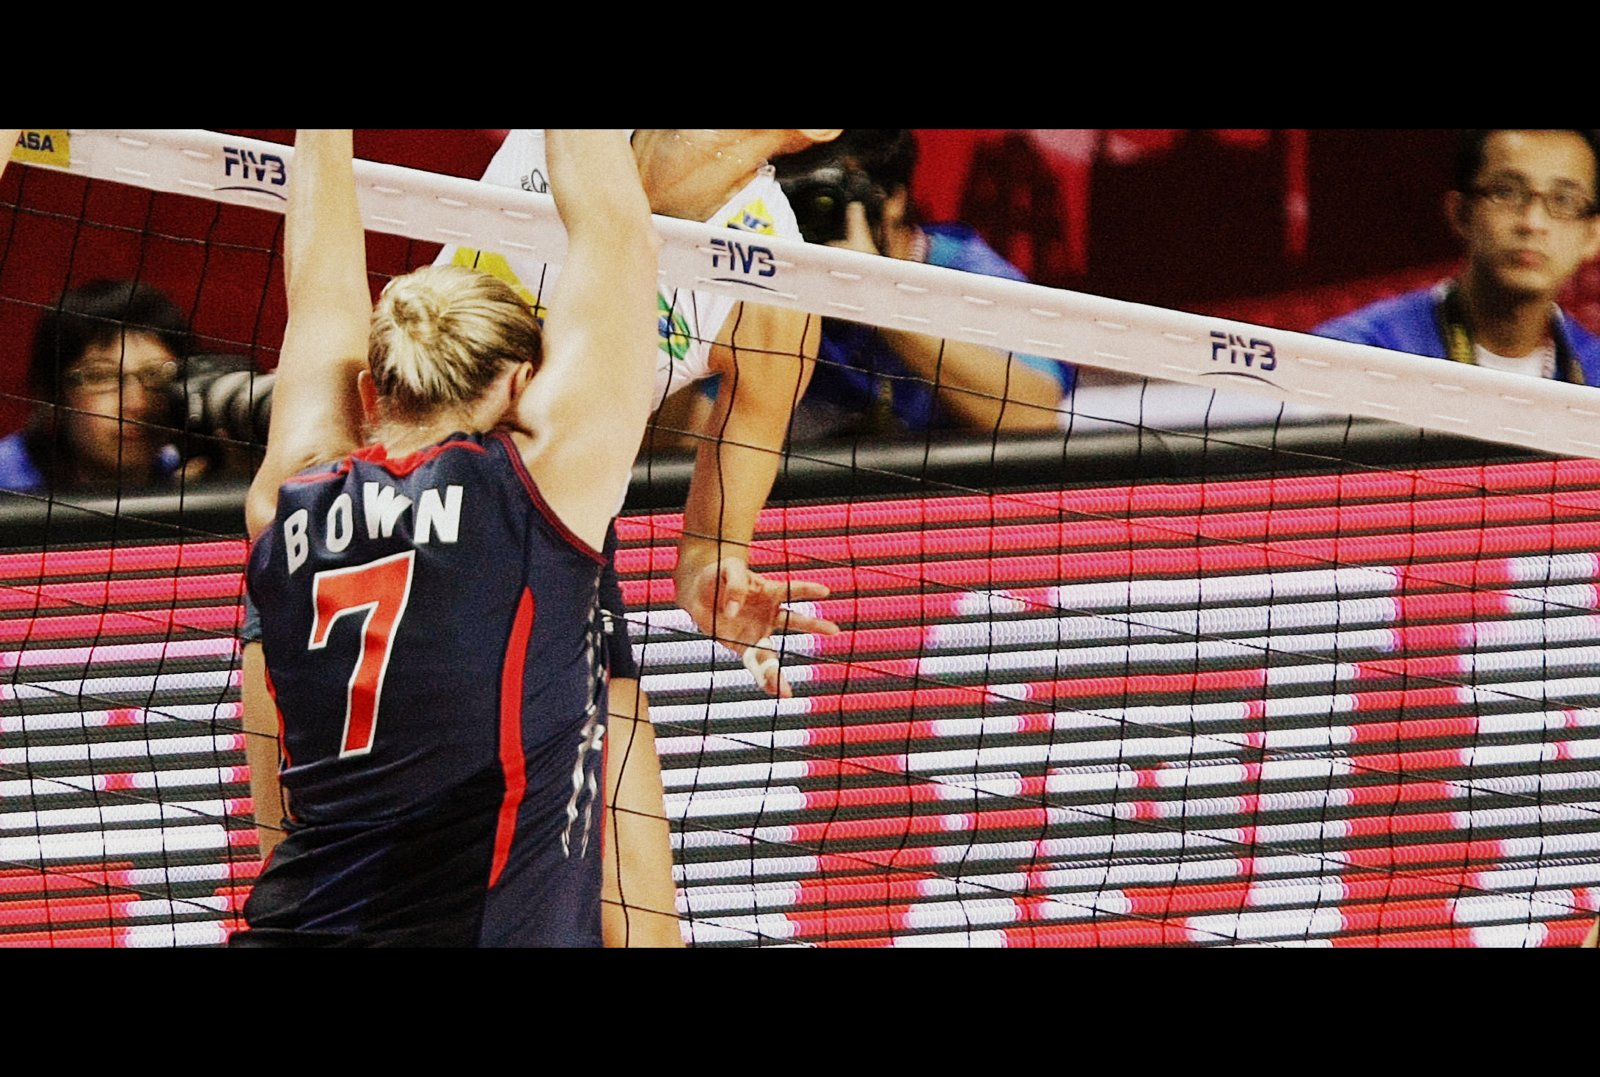 heather bown usa volleyball player 2